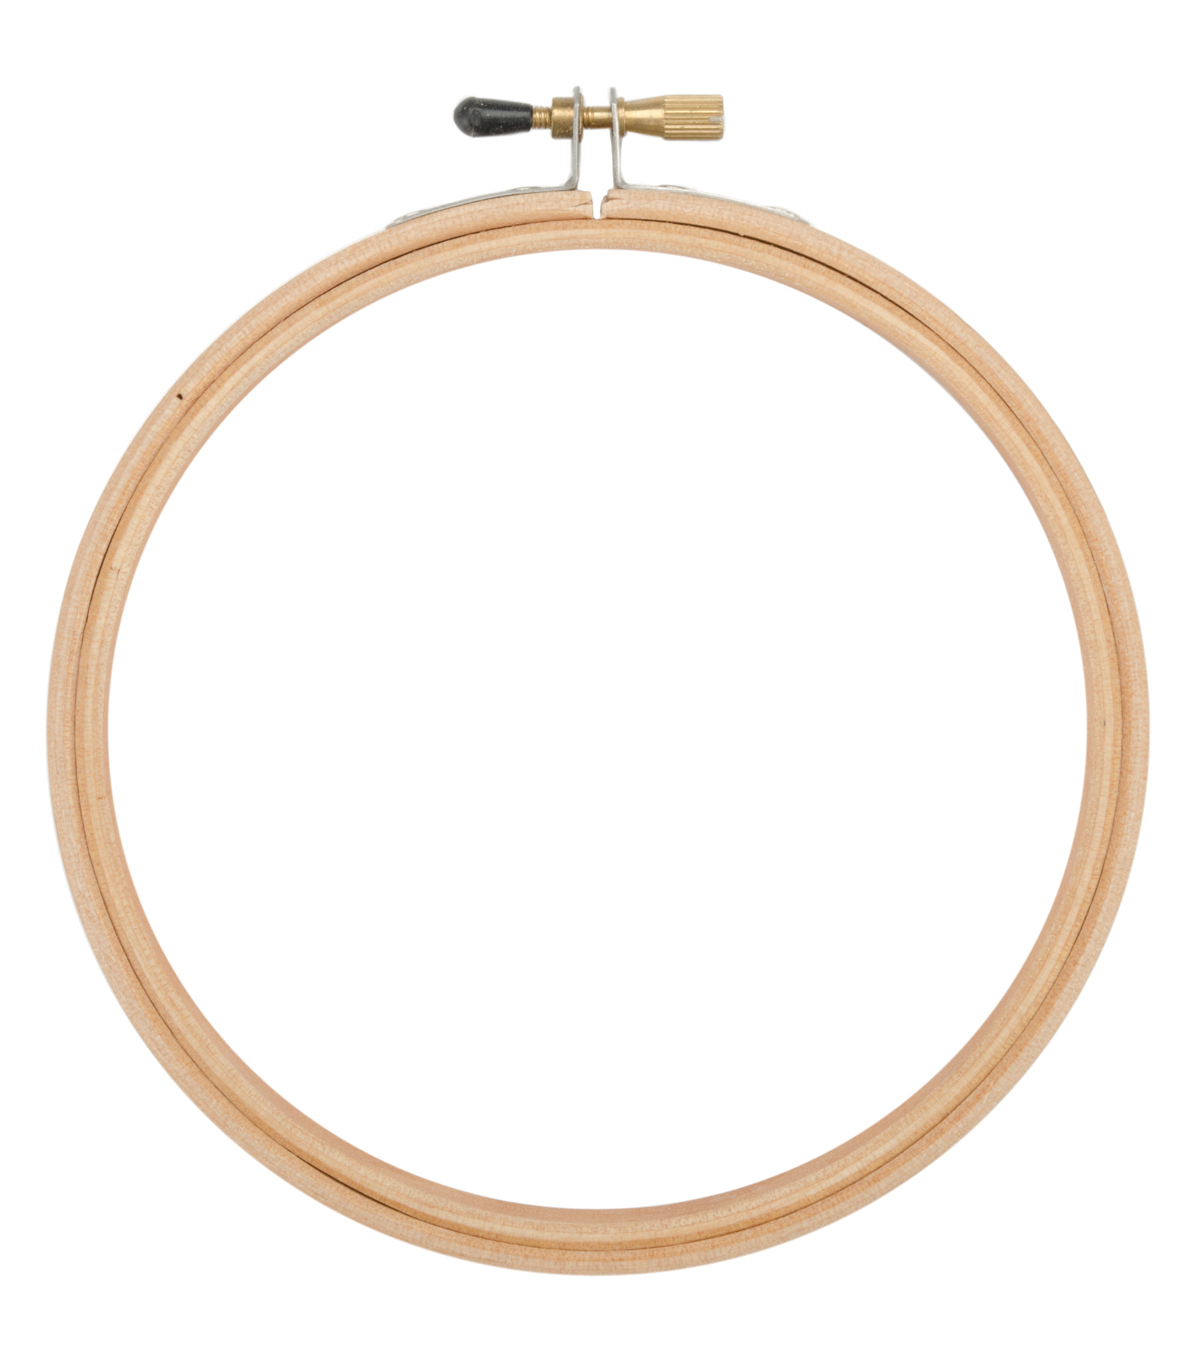 5\u0022 Wood Embroidery Hoop With Round Edges-